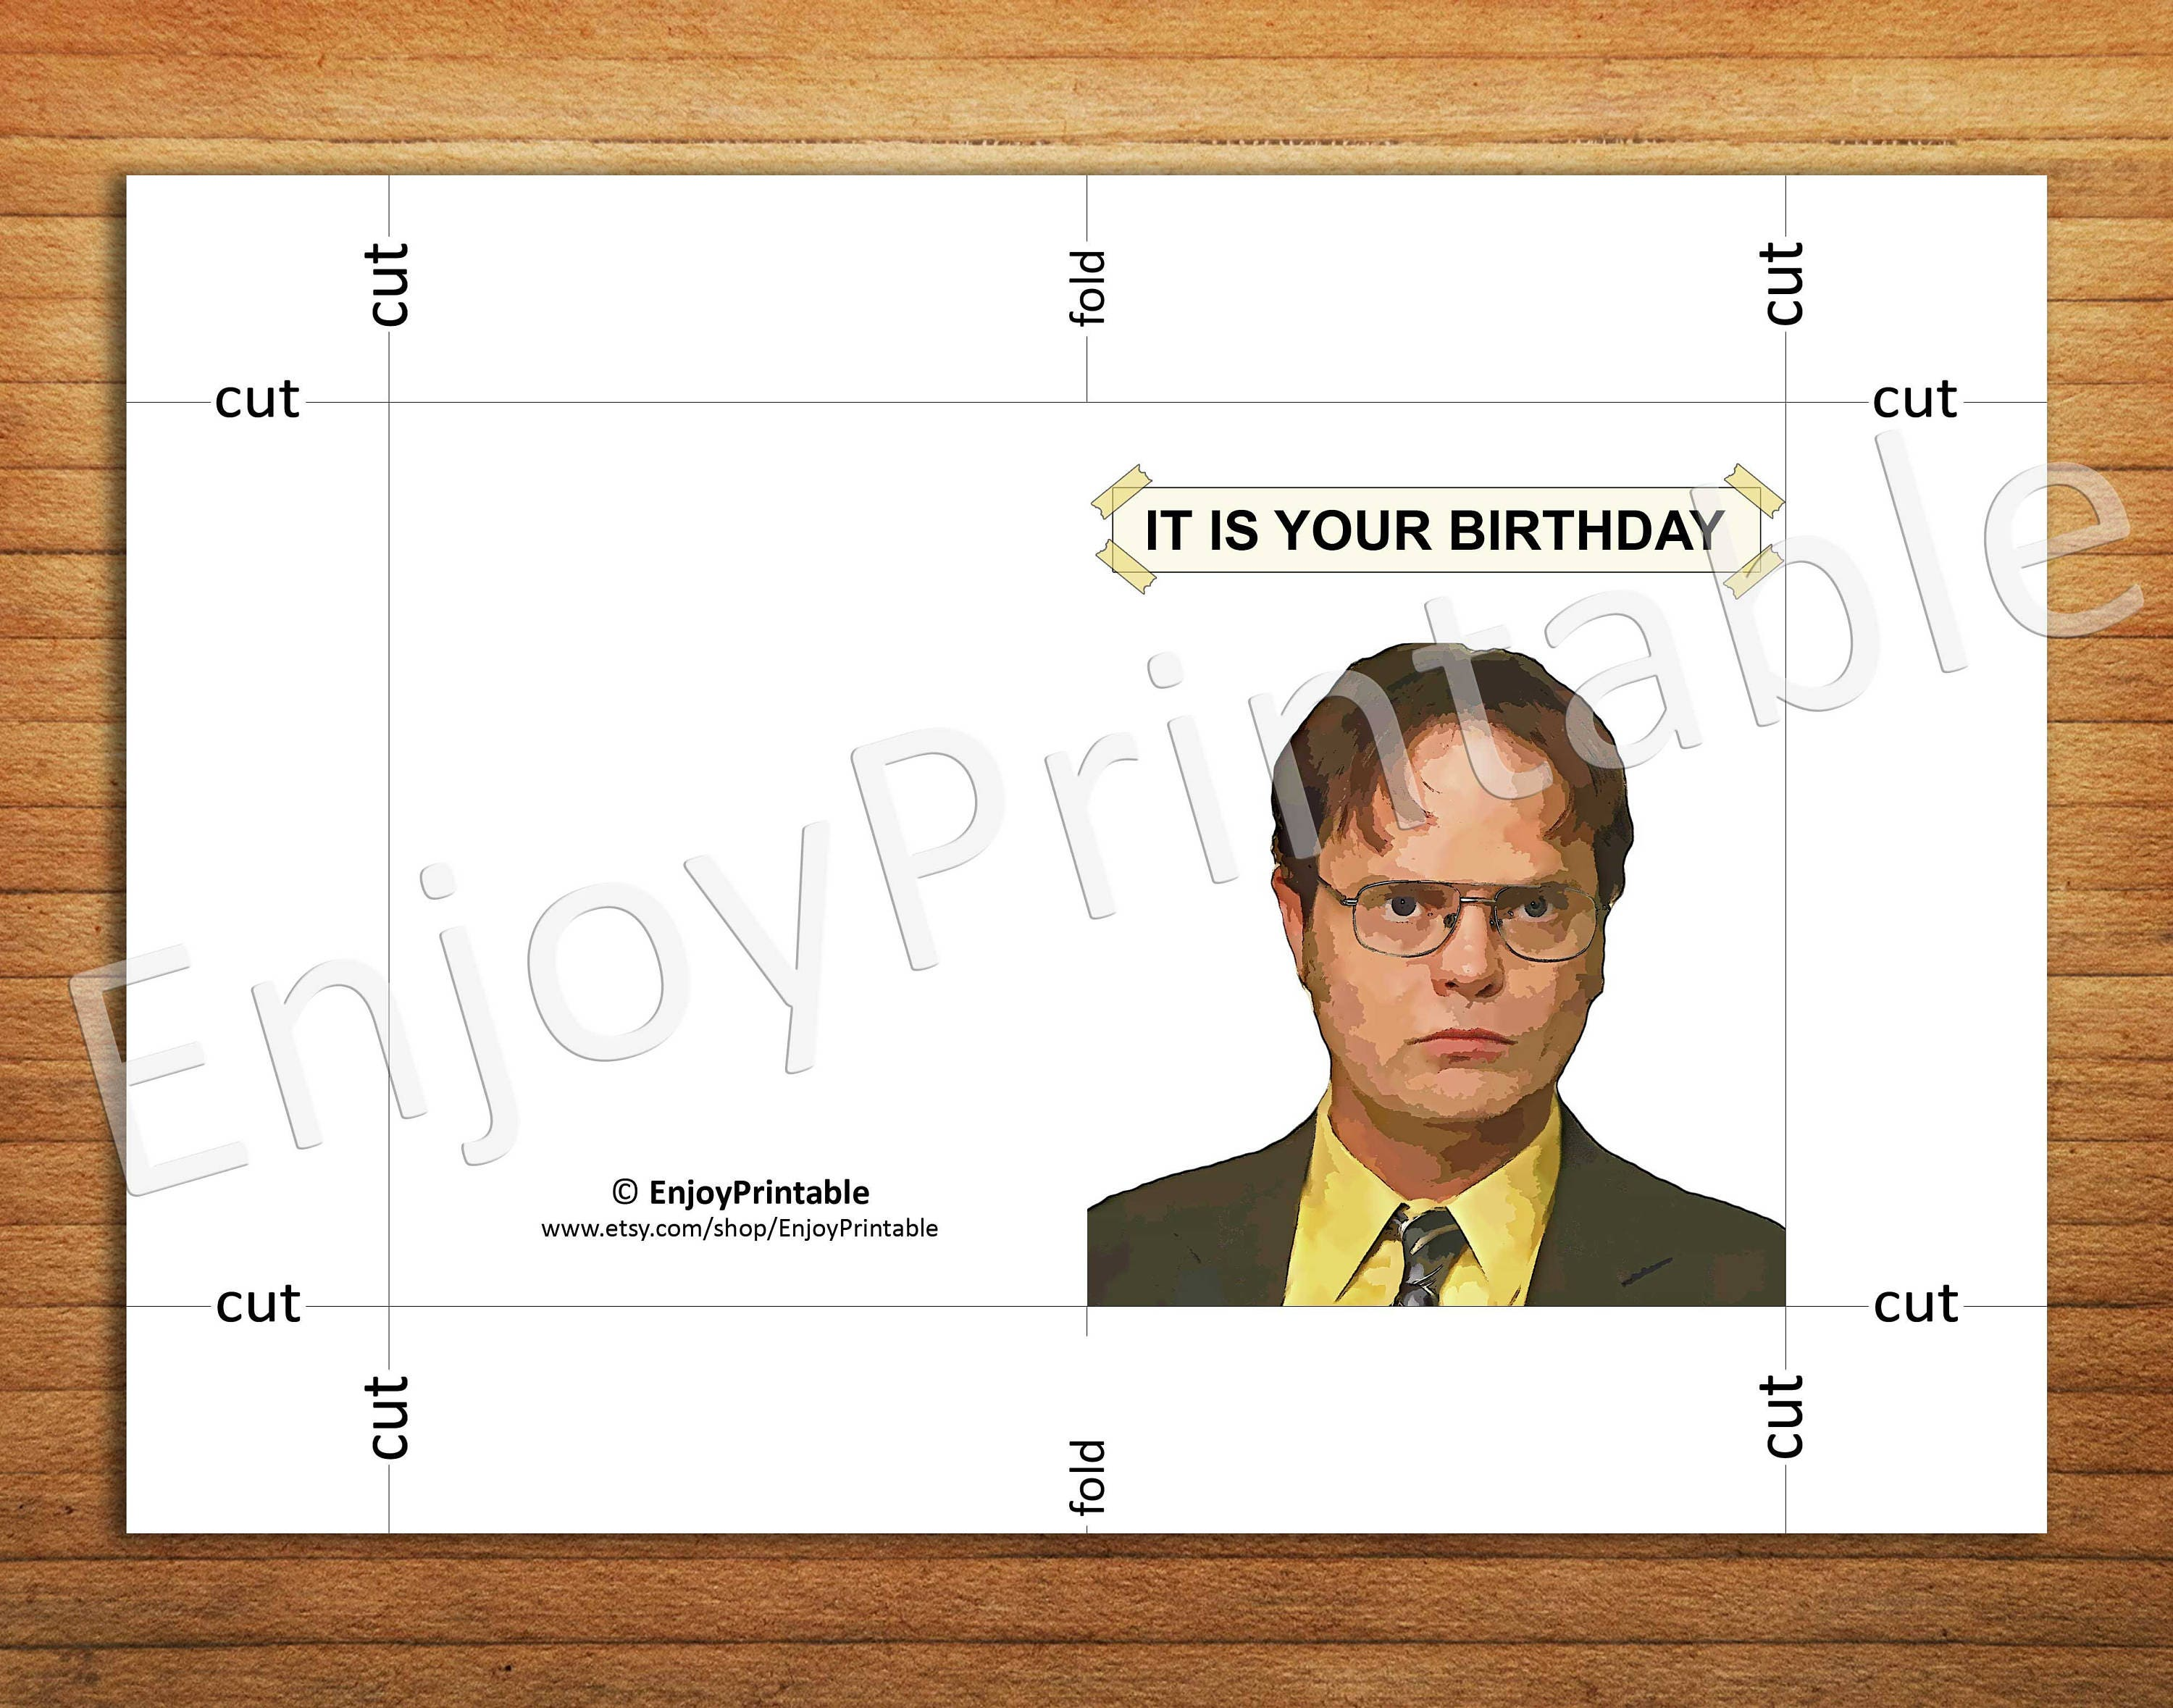 image regarding Dwight Schrute Id Badge Printable named 100+ Dwight Schrute Pdf yasminroohi